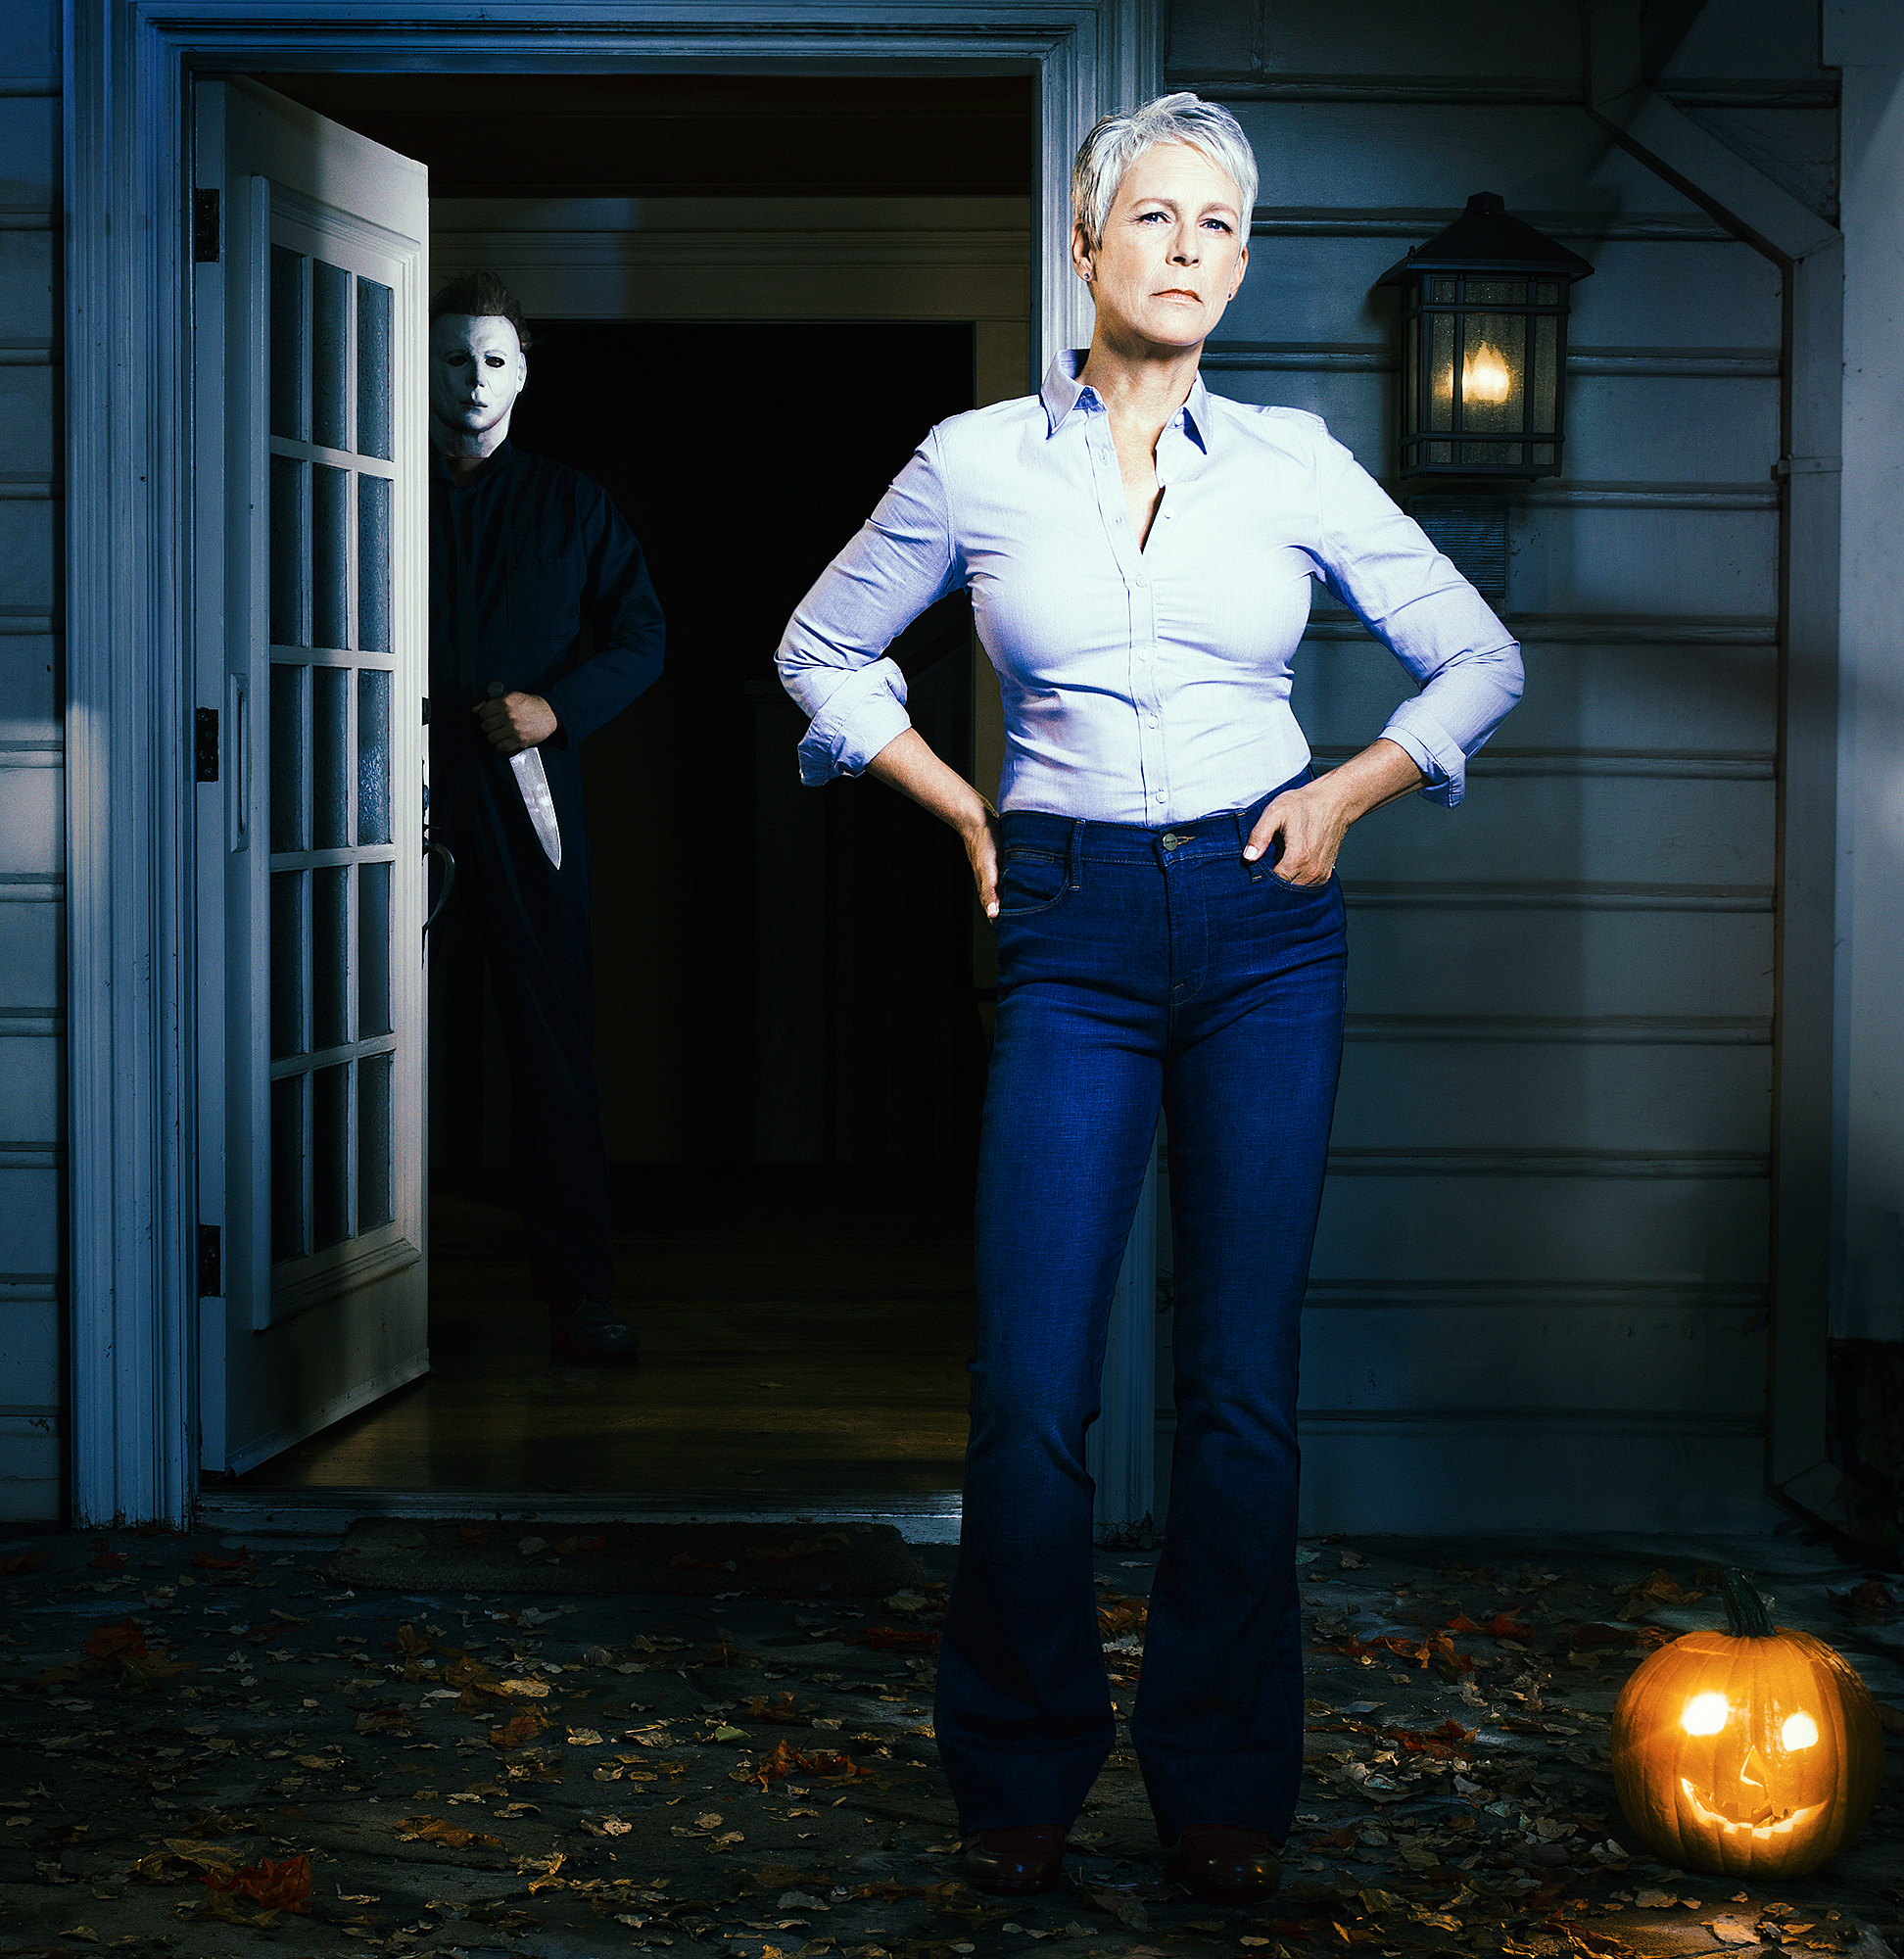 Halloween-triology-returns-2020